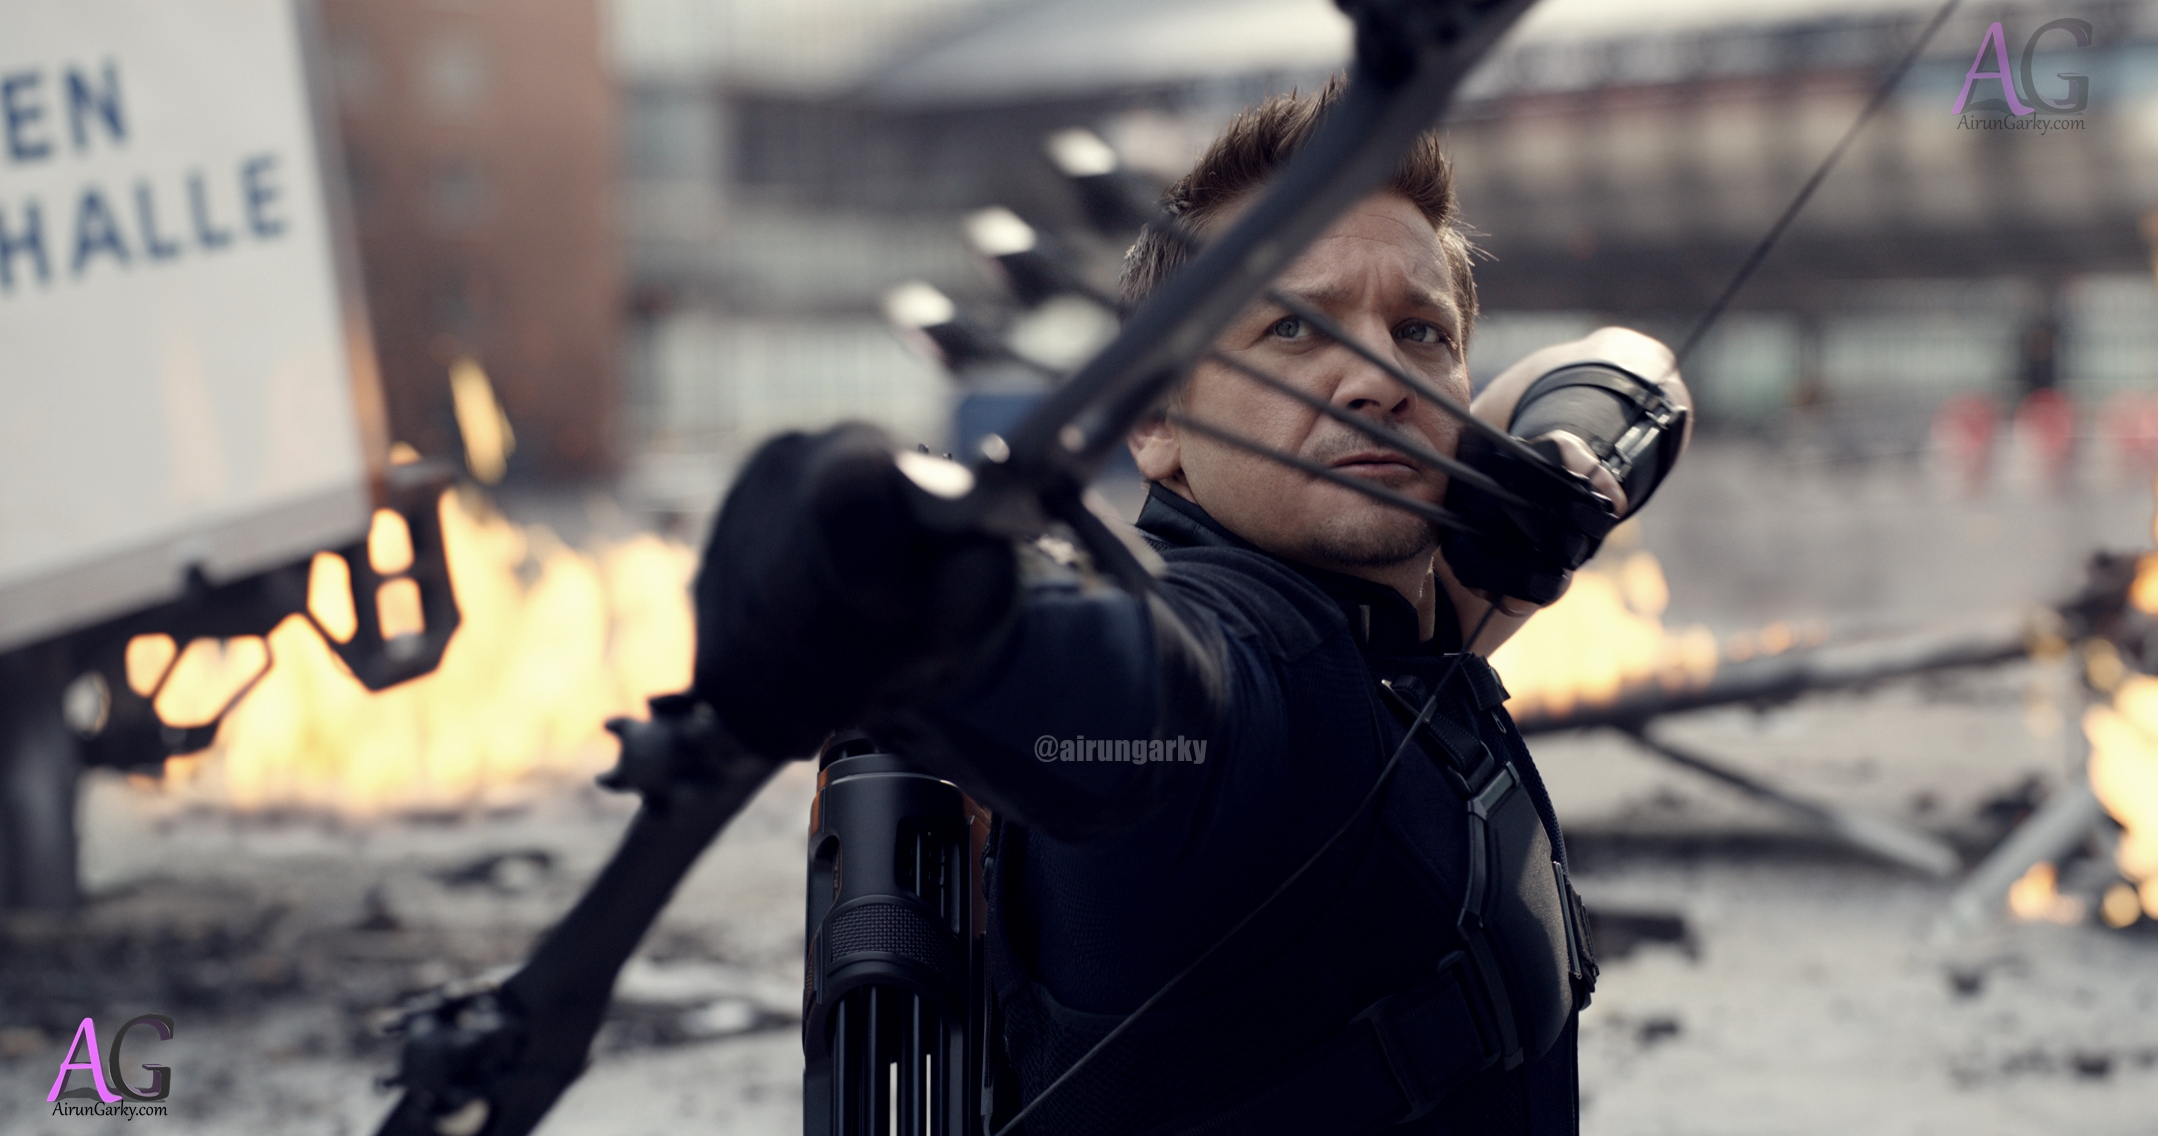 civilwar hi-res hawkeye with bow and arrow